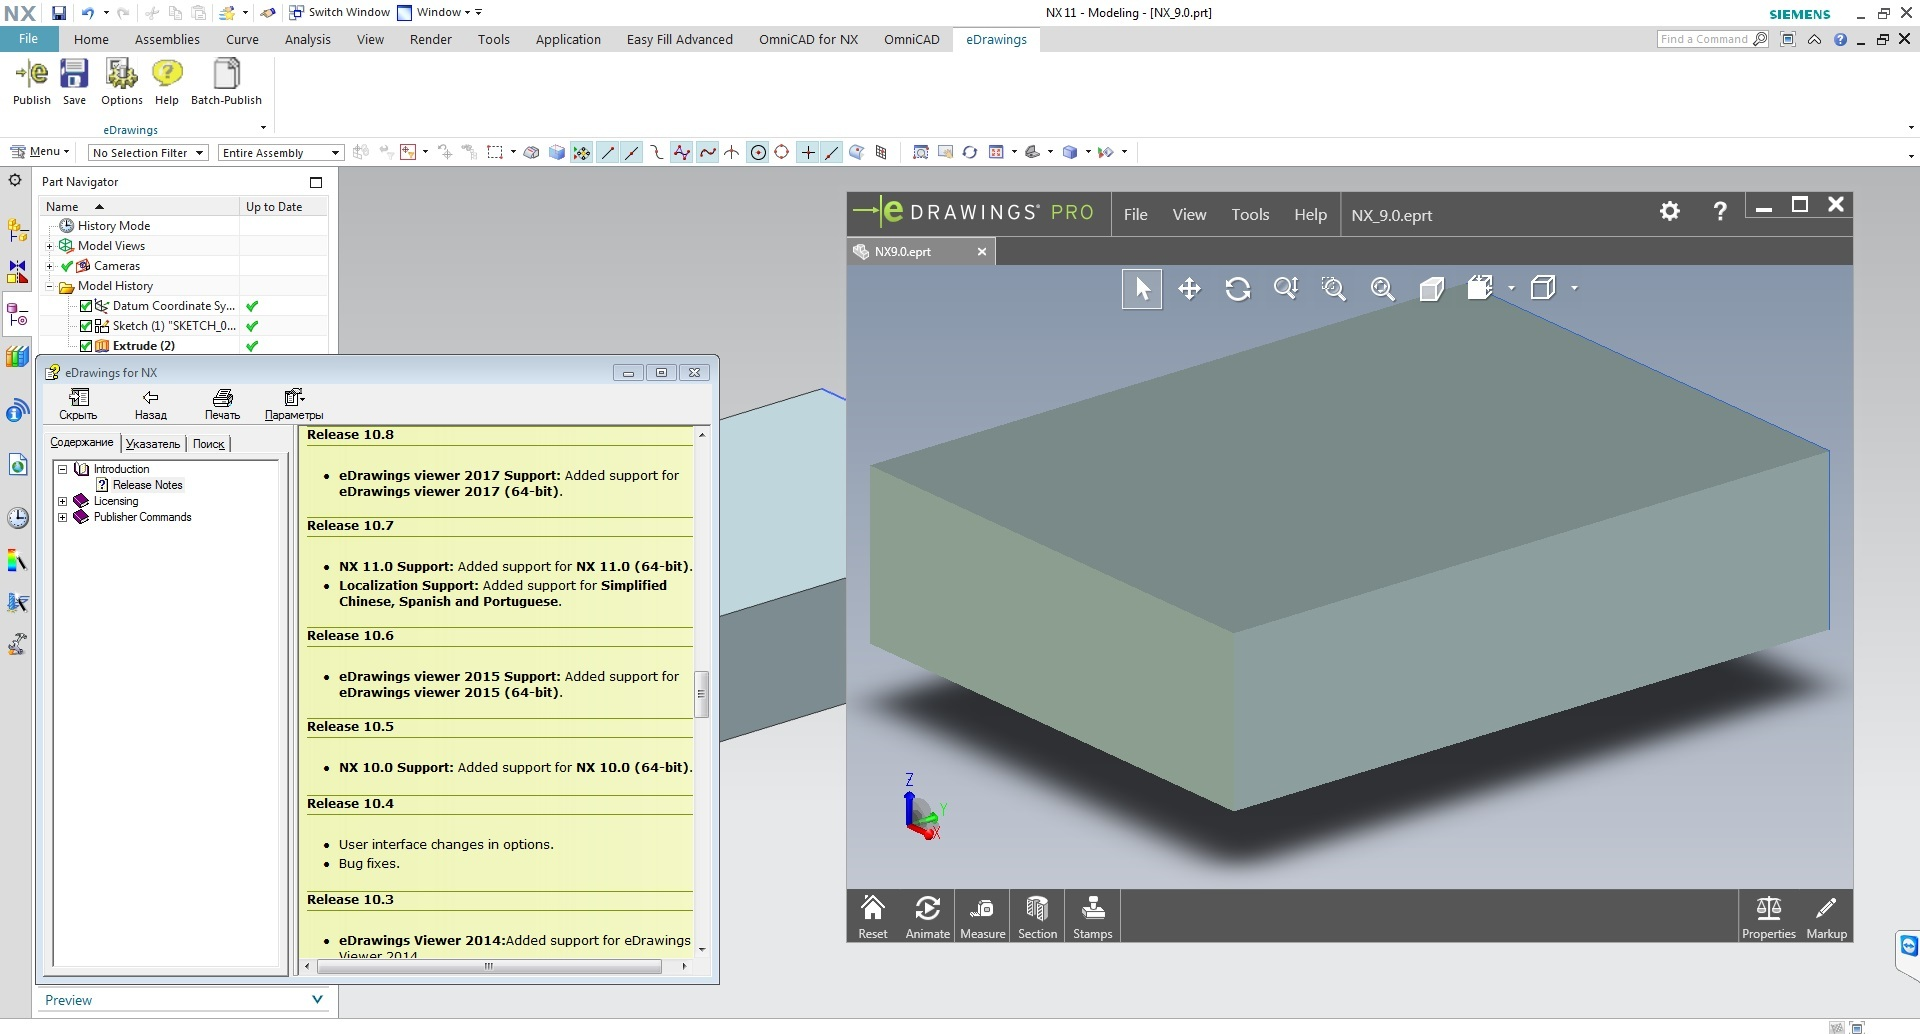 eDrawings Pro 2017 Suite for NX 11